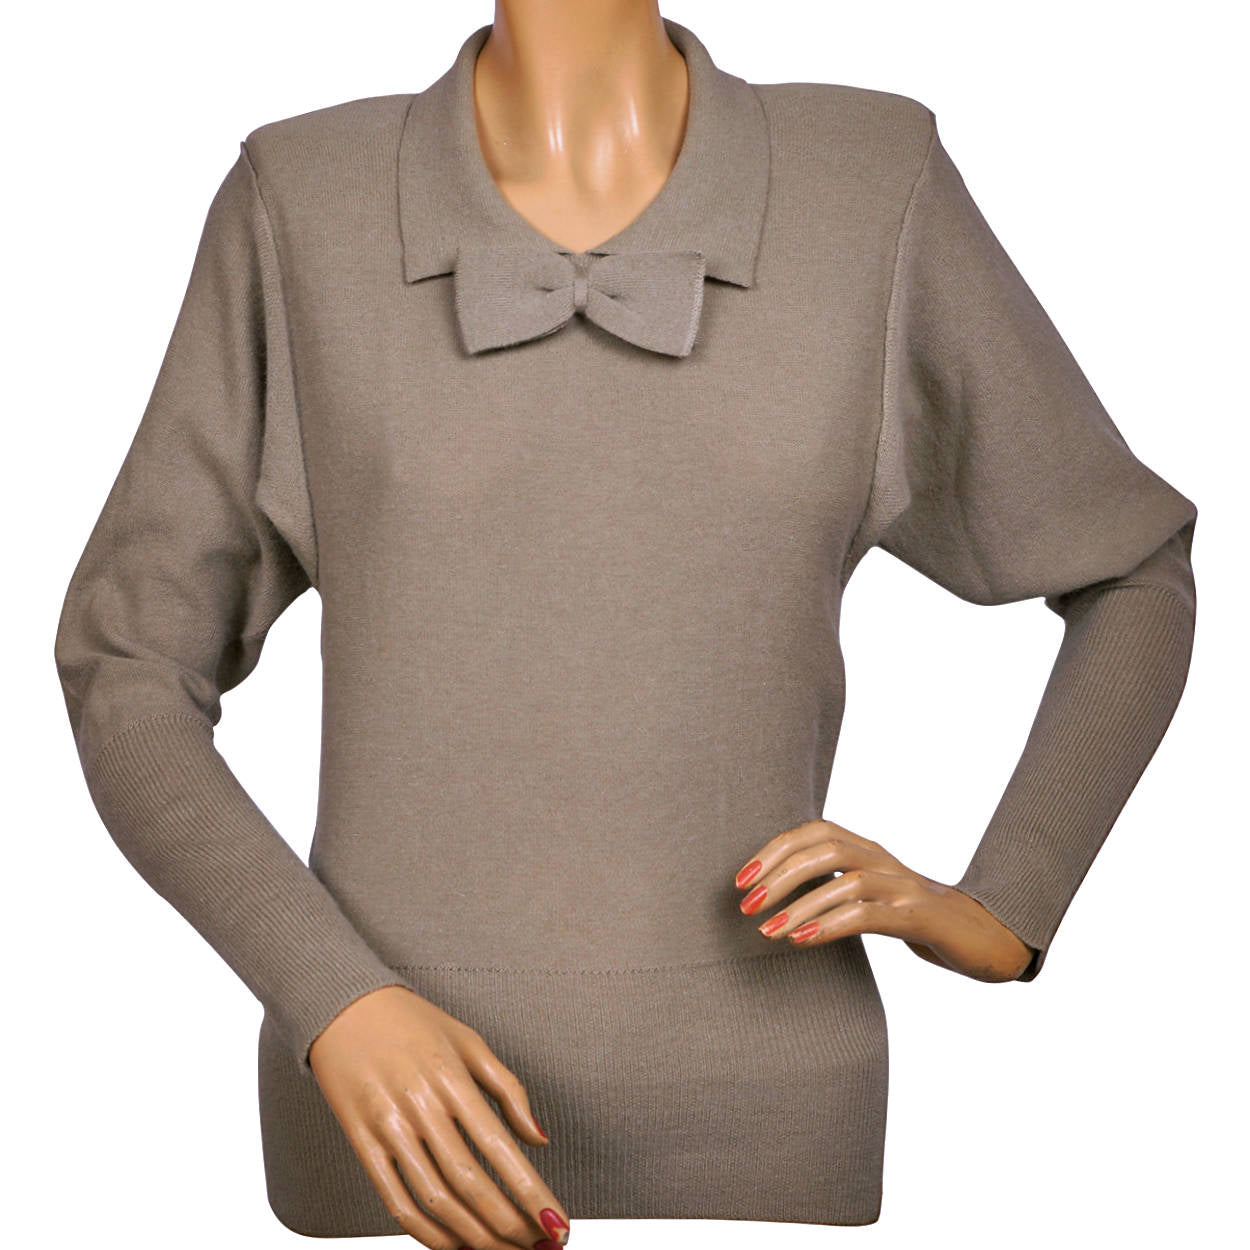 0781d17a69 Vintage Sonia Rykiel Sweater 1980s Taupe Wool Angora Ladies Size Small